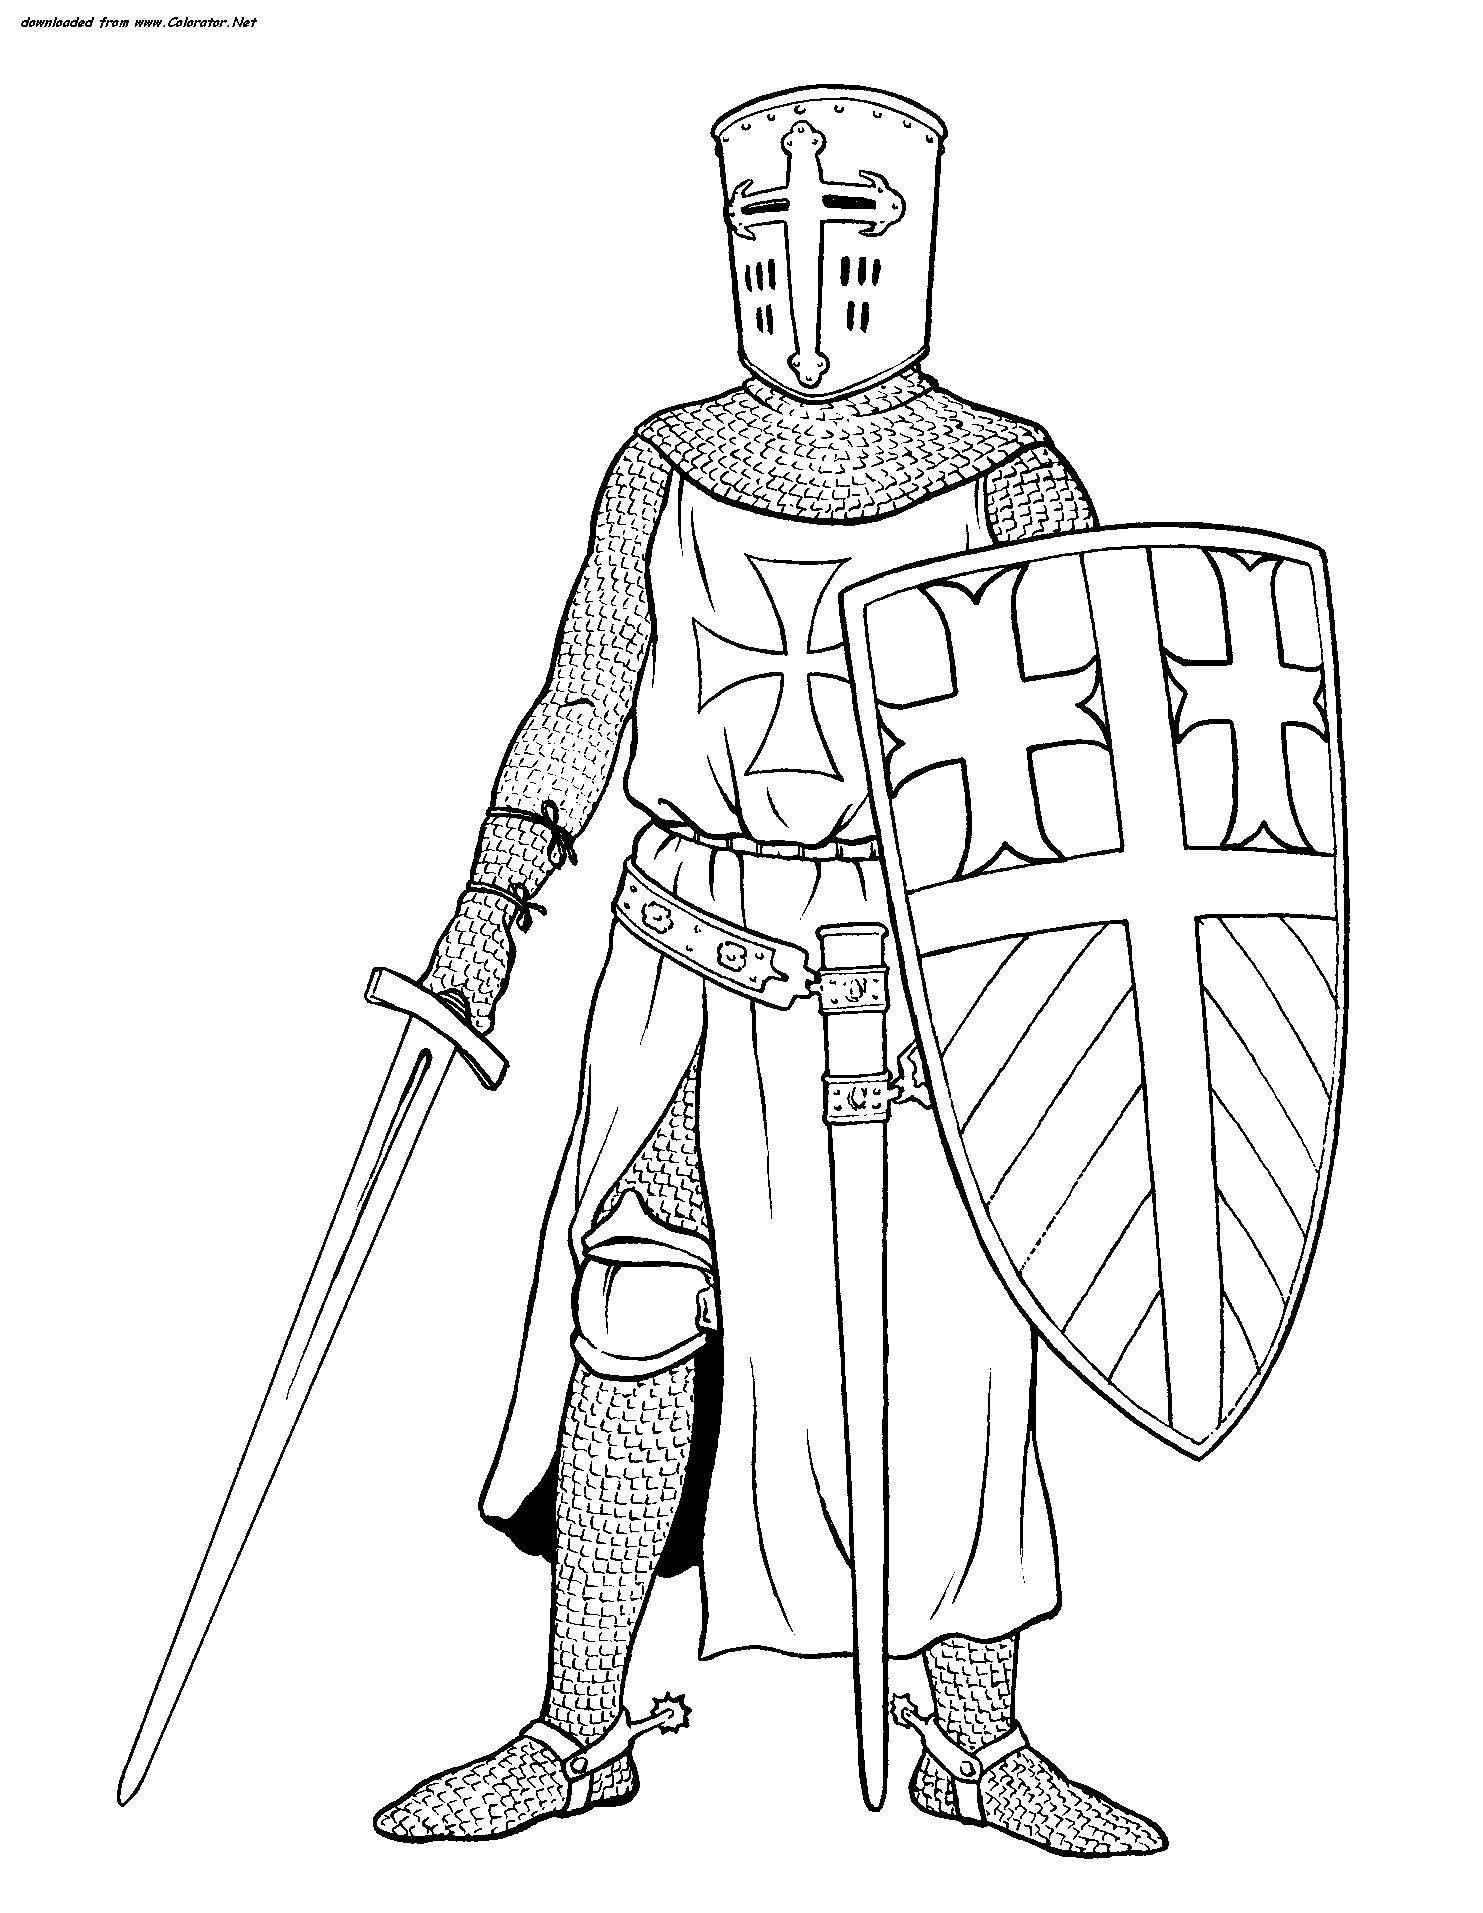 Crusader Coloring Pages to Print  Castle coloring page, Medieval